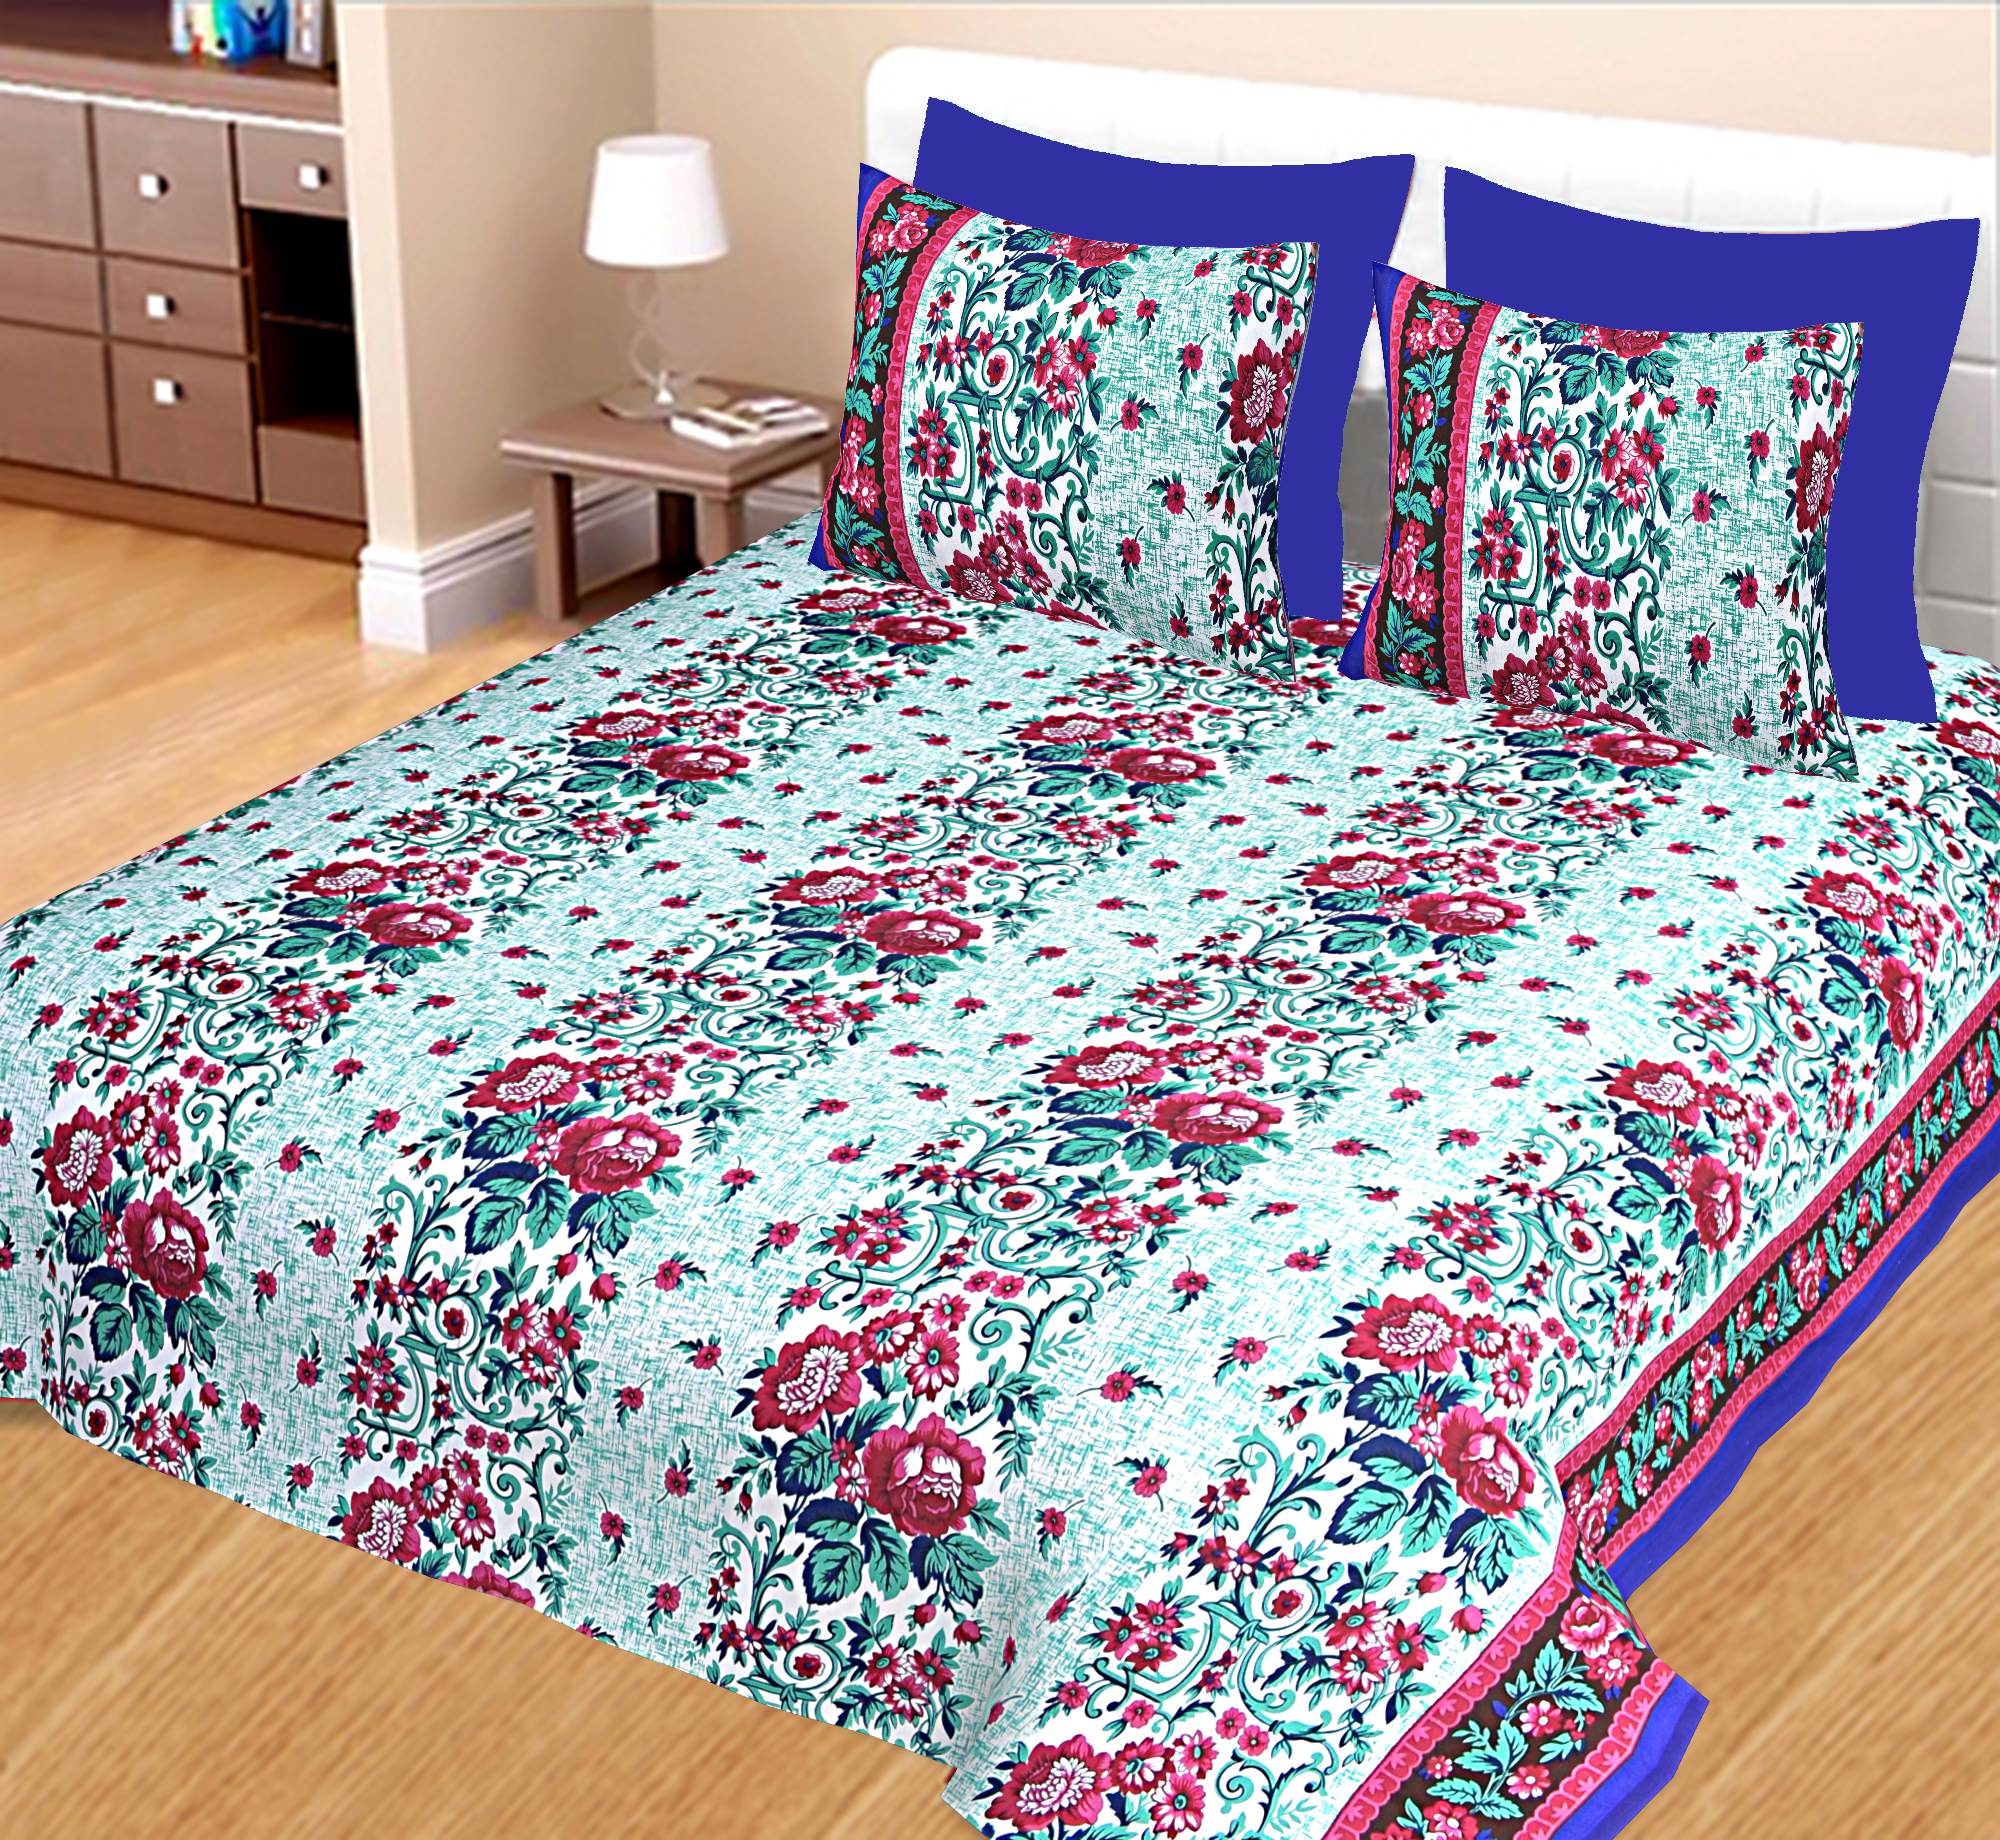 Kuber Industries 100% Cotton 144 TC Double Bed sheet with 2 Pillow Covers (Green) -CTKTC12993